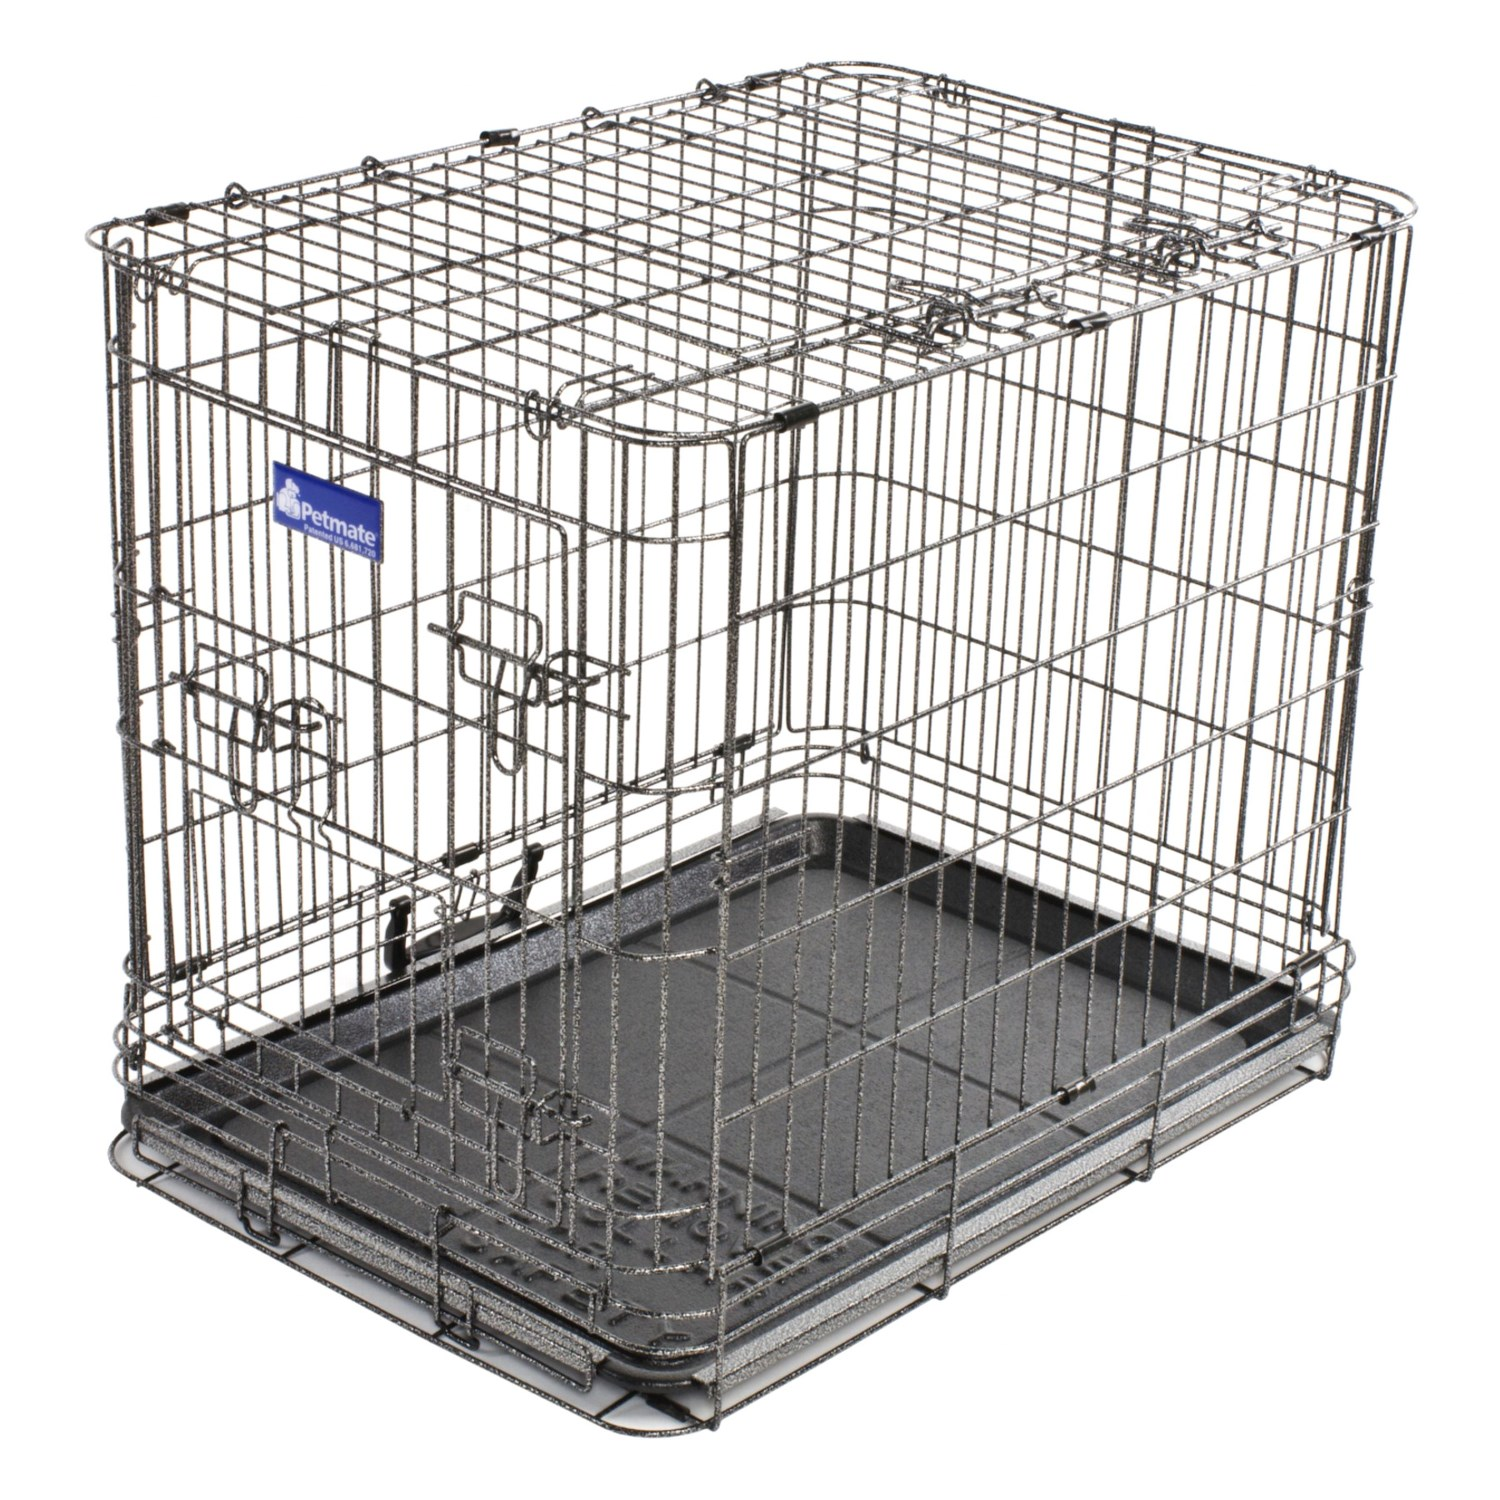 petmate deluxe edition wire dog kennel large 29997 With petmate large dog kennel